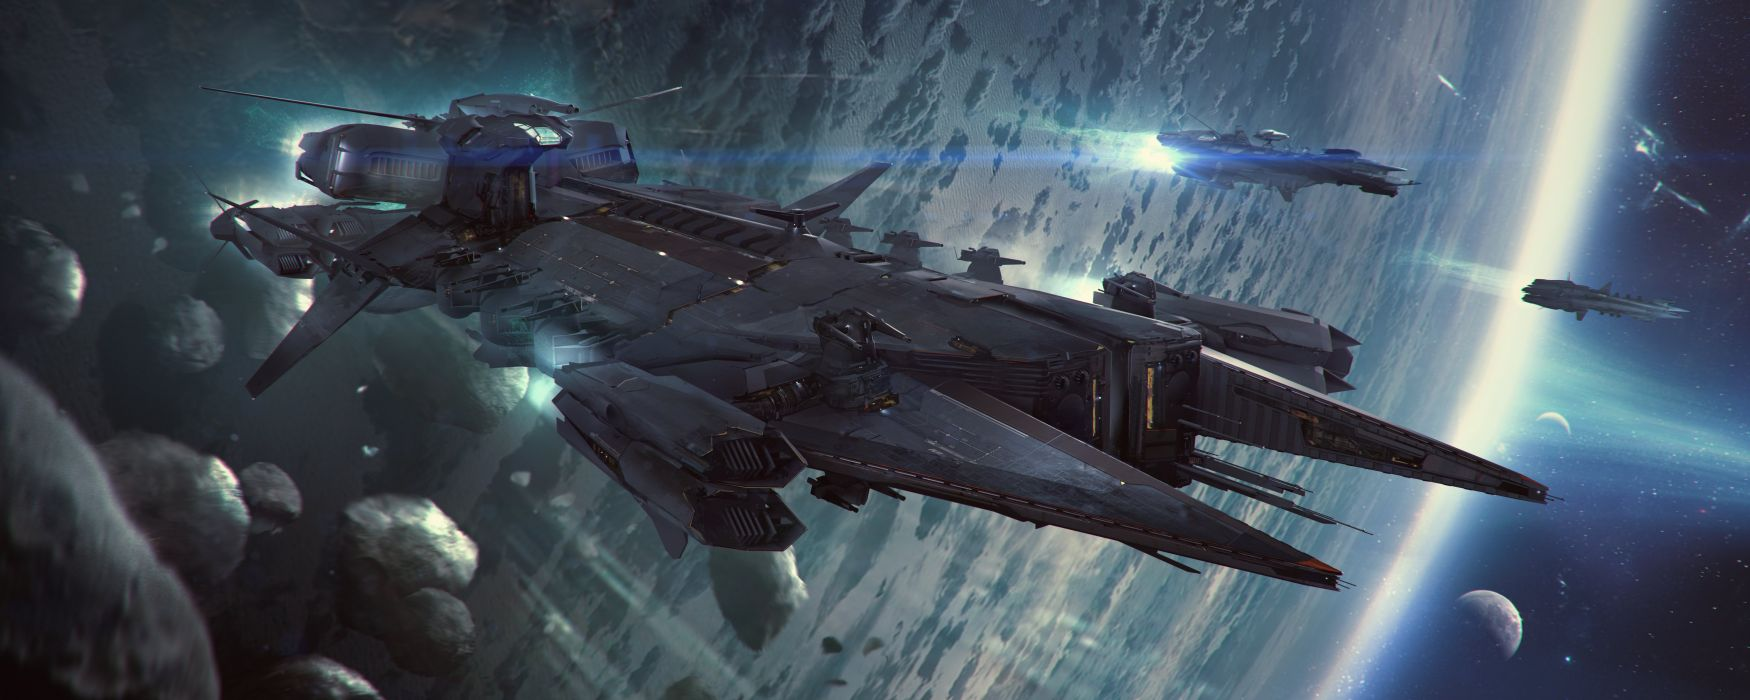 sci-fi science space art artwork fantasy artistic original spaceship wallpaper